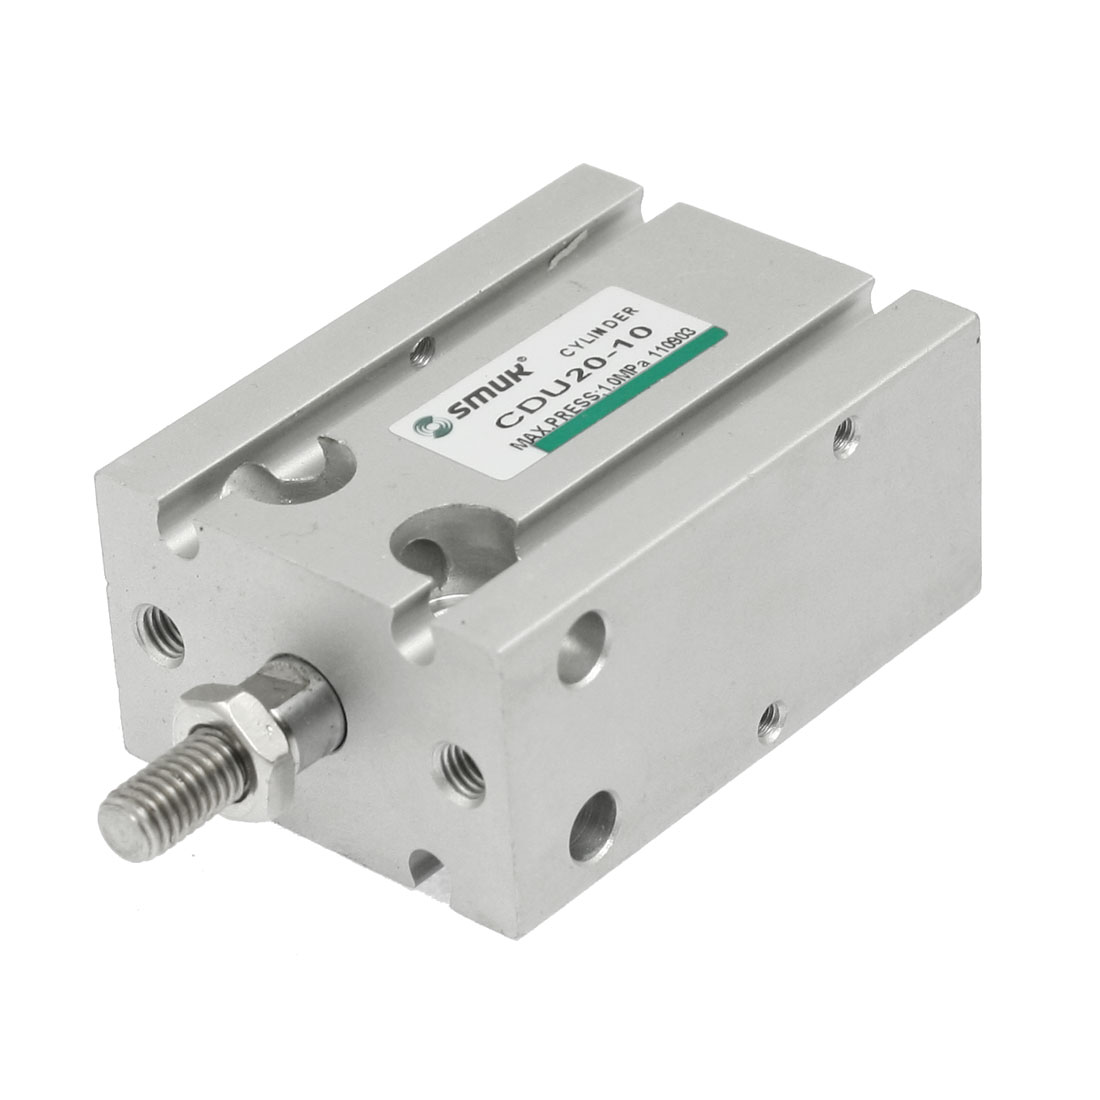 CDU 20-15 Single Rod Double Acting Pneumatic Air Cylinder